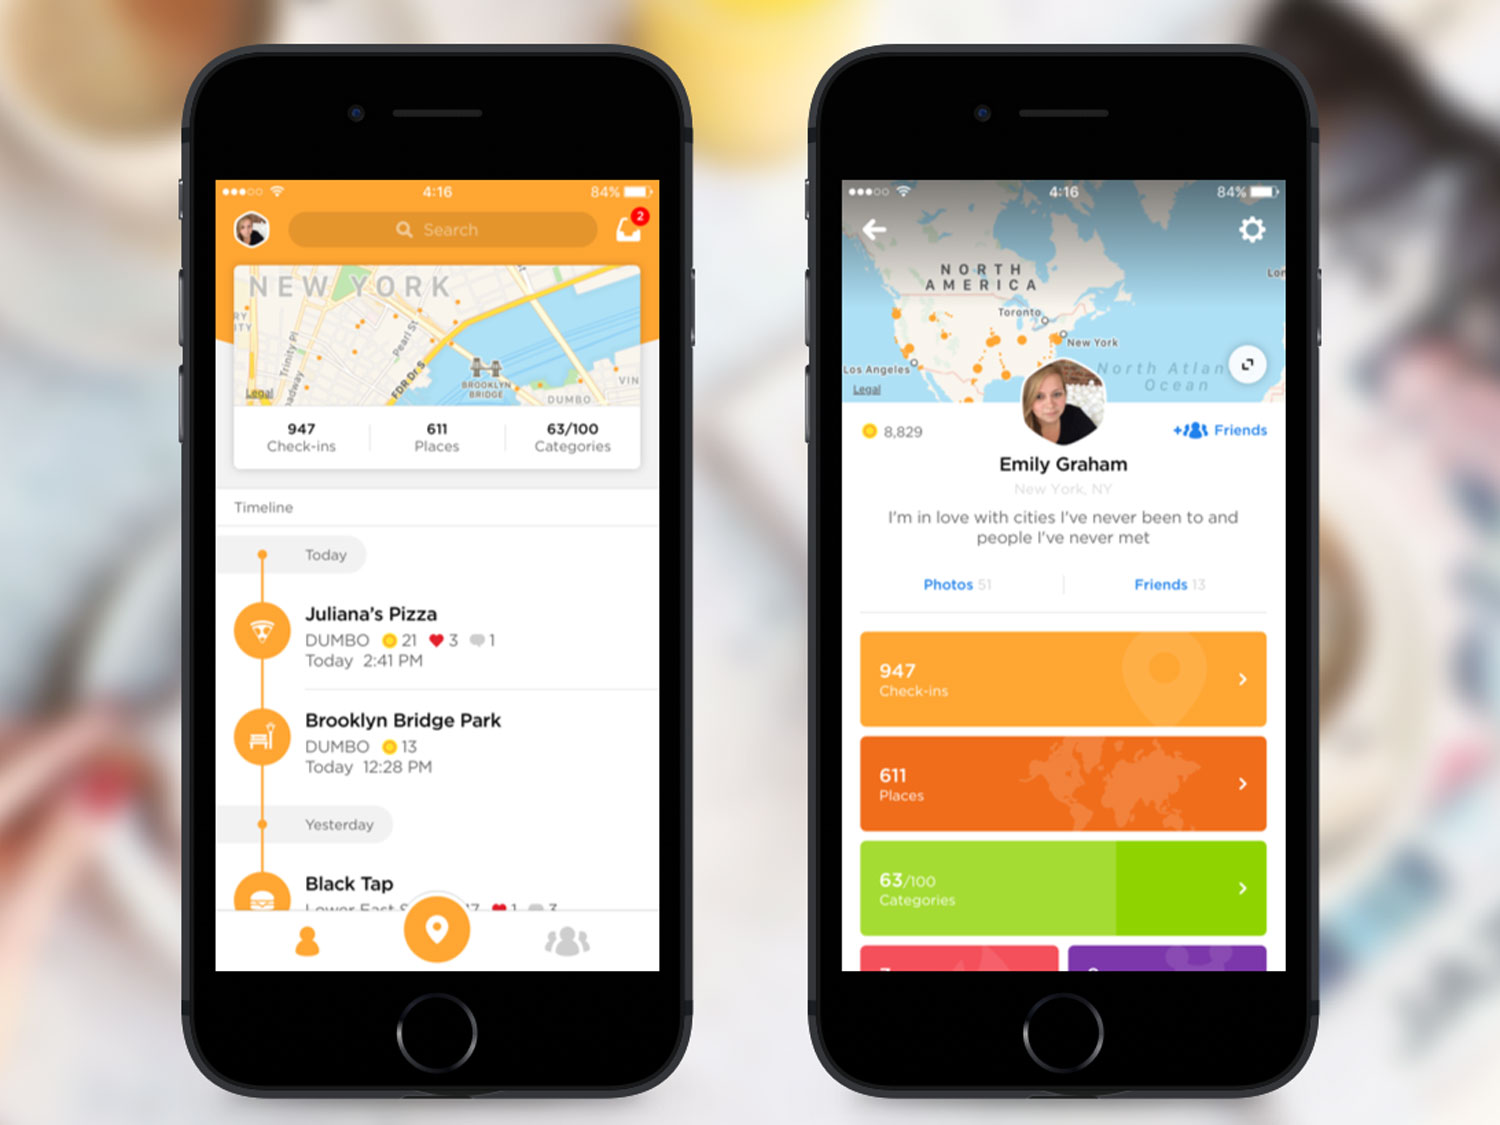 Swarm 5.0 Is the Easiest Way to Give Restaurant Recommendations to Your Friends